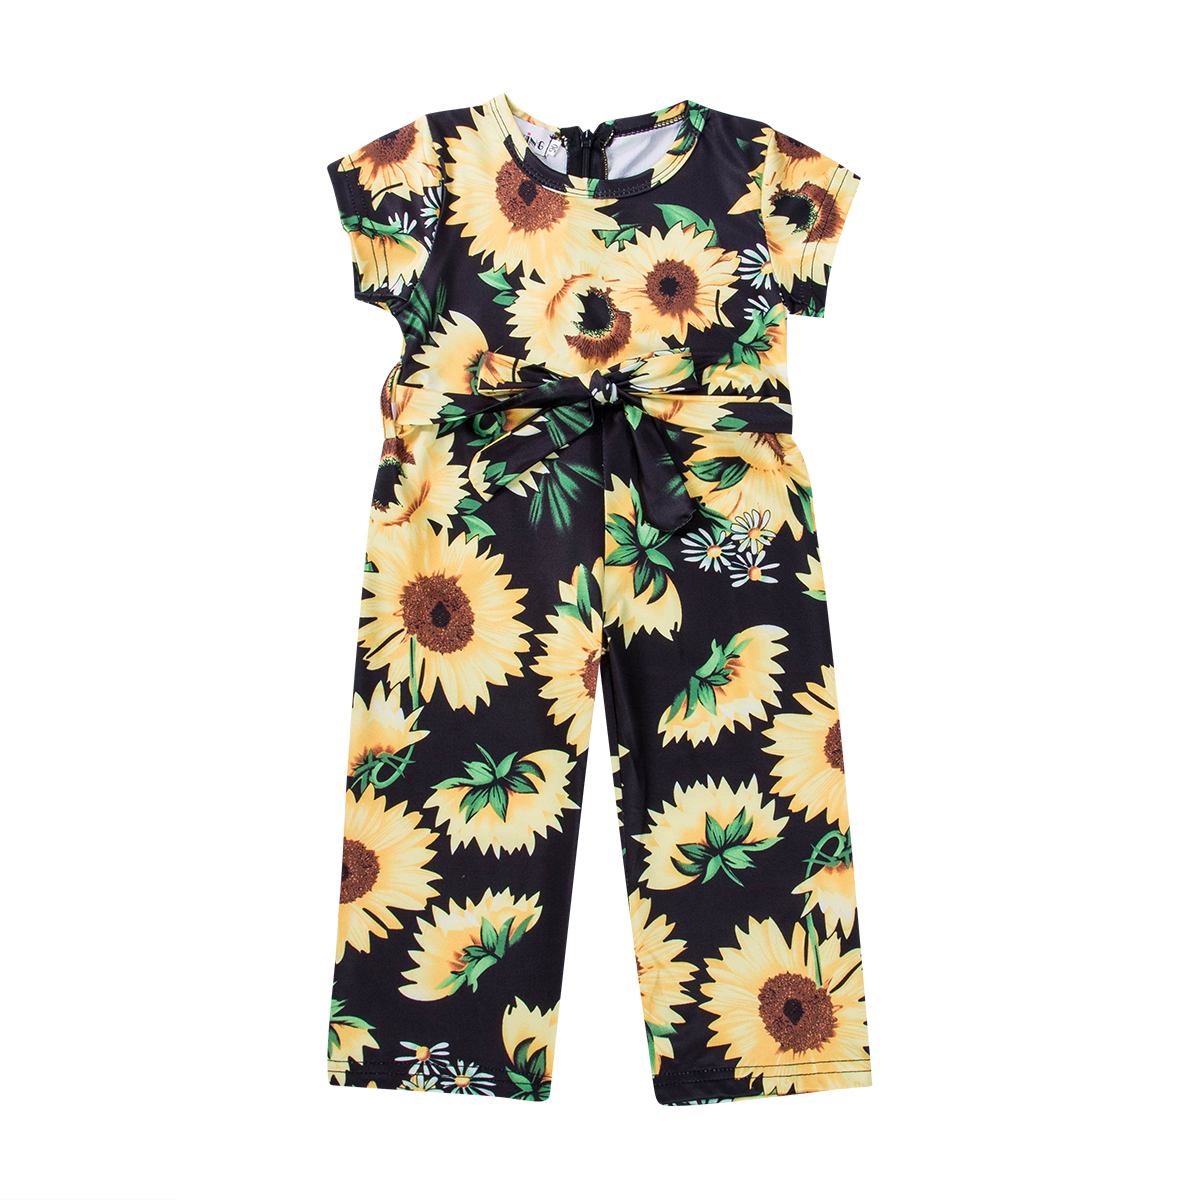 2019 Summer Toddler Kids Baby Girl Sunflower Romper Short Sleeve Belt Bow Princess Girls Jumpsuit Playsuit Sunsuit Clothes(China)